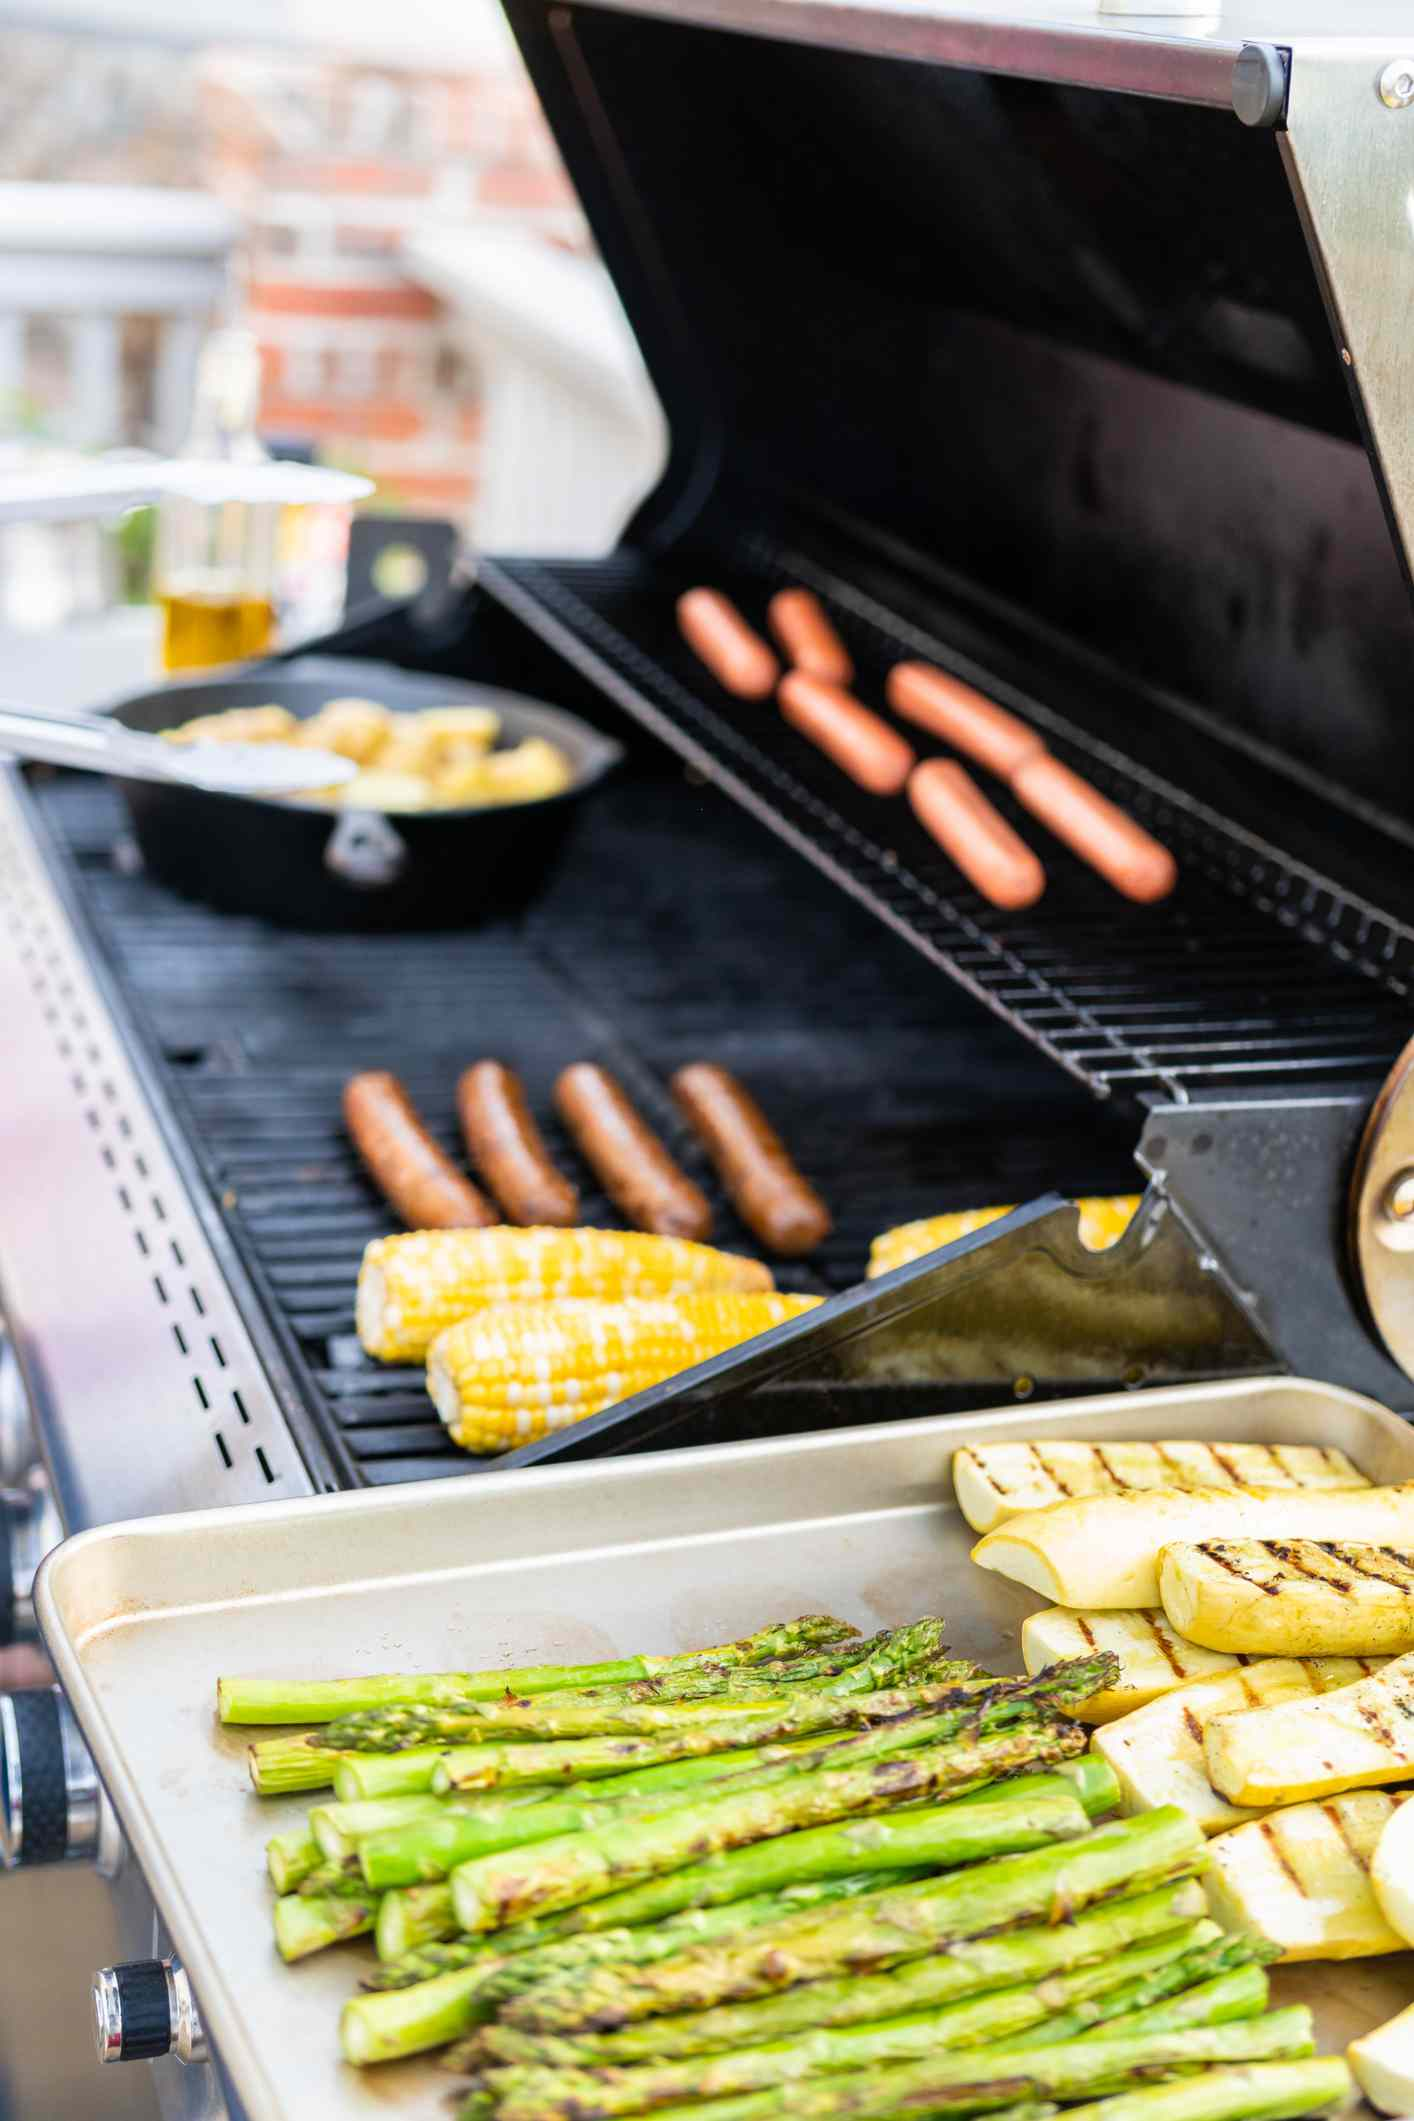 how to clean a grill - propane grill cookout with meat and vegetables